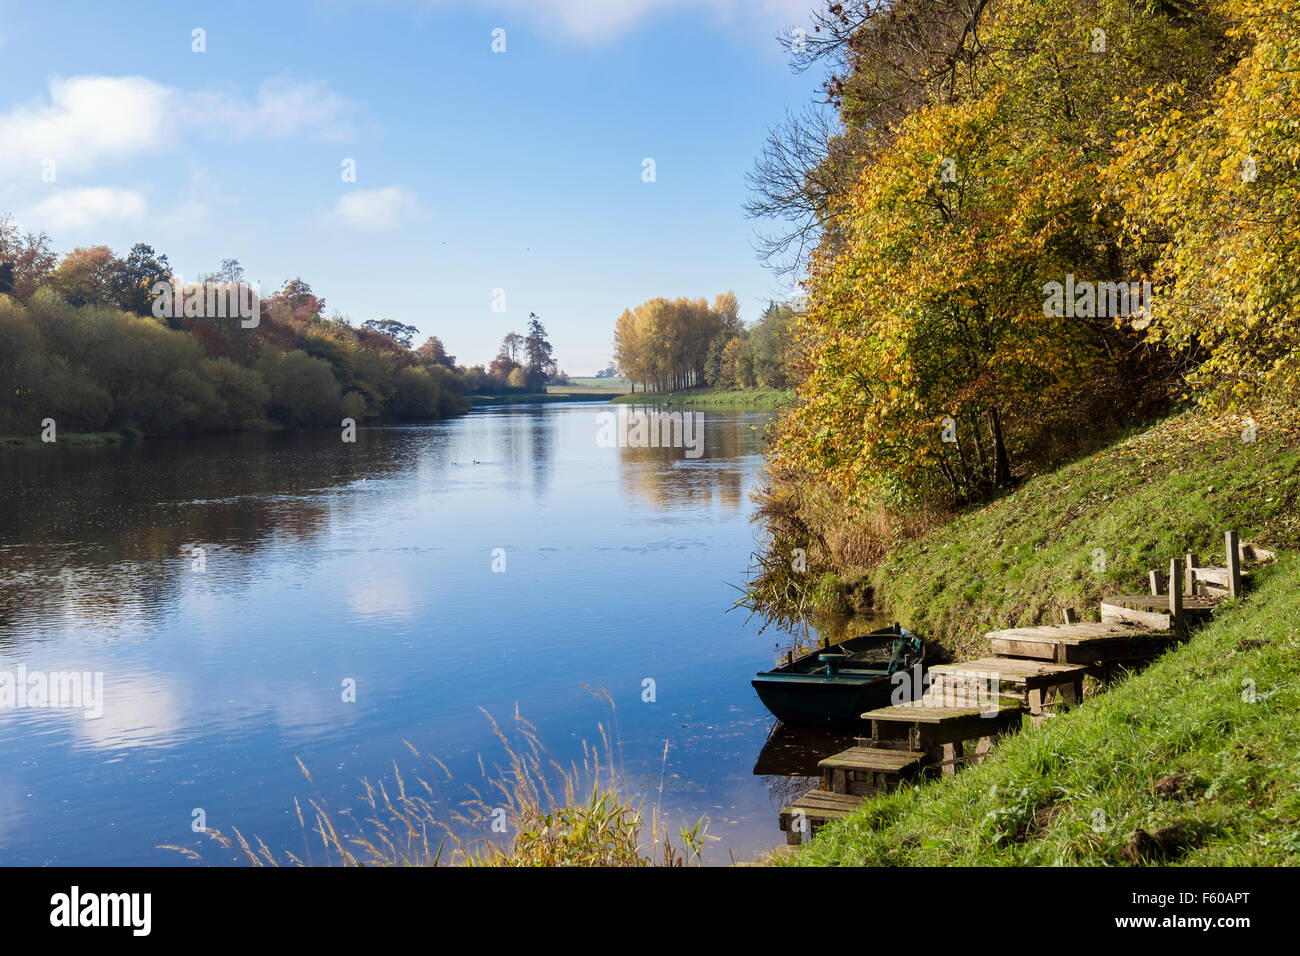 View along River Tweed valley with moored boat by steps in autumn. Kelso, Berwickshire, Scottish Borders, Scotland, - Stock Image